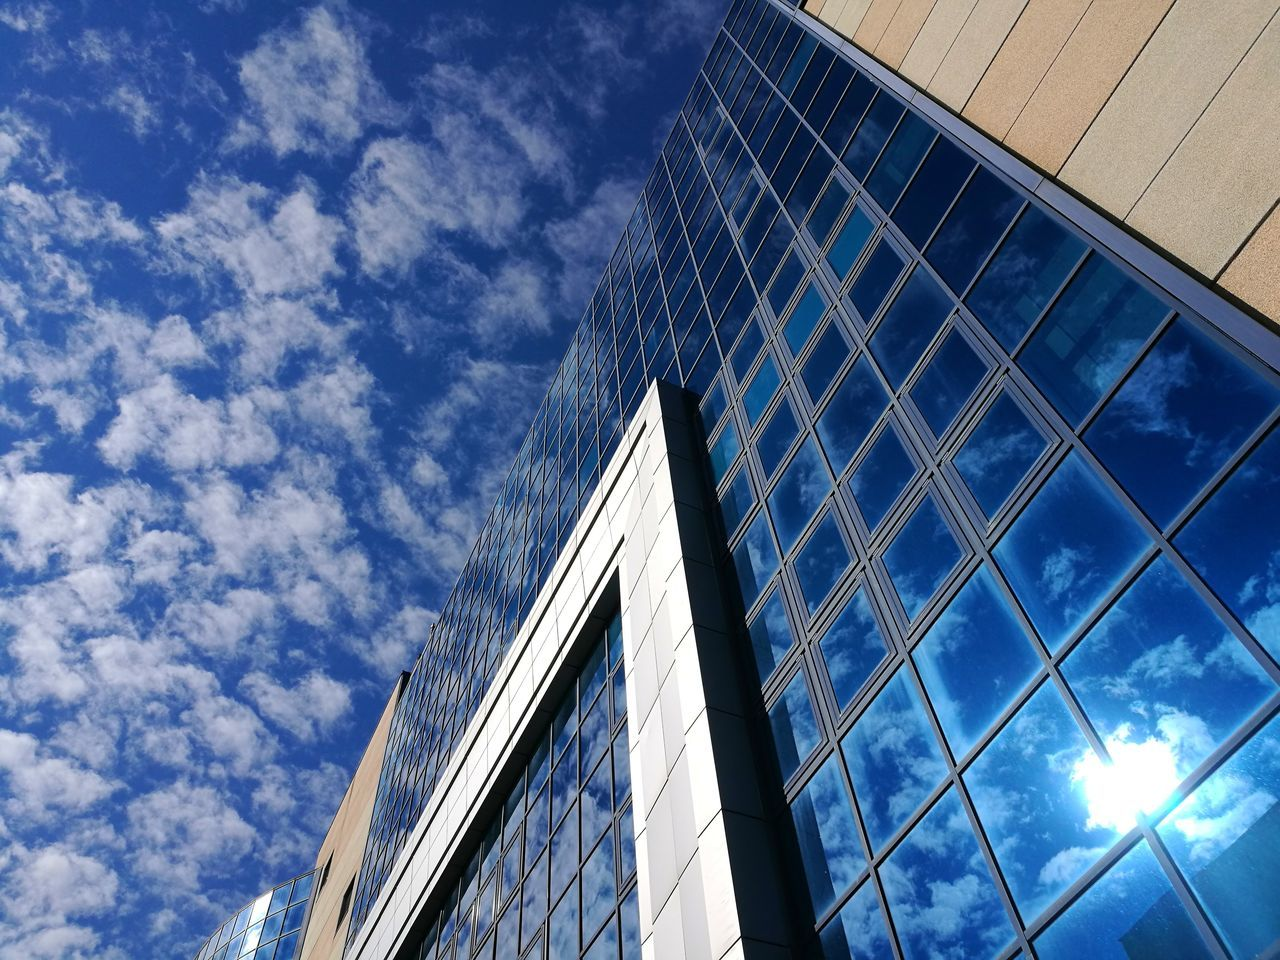 architecture, low angle view, modern, built structure, building exterior, sky, no people, day, window, outdoors, cloud - sky, blue